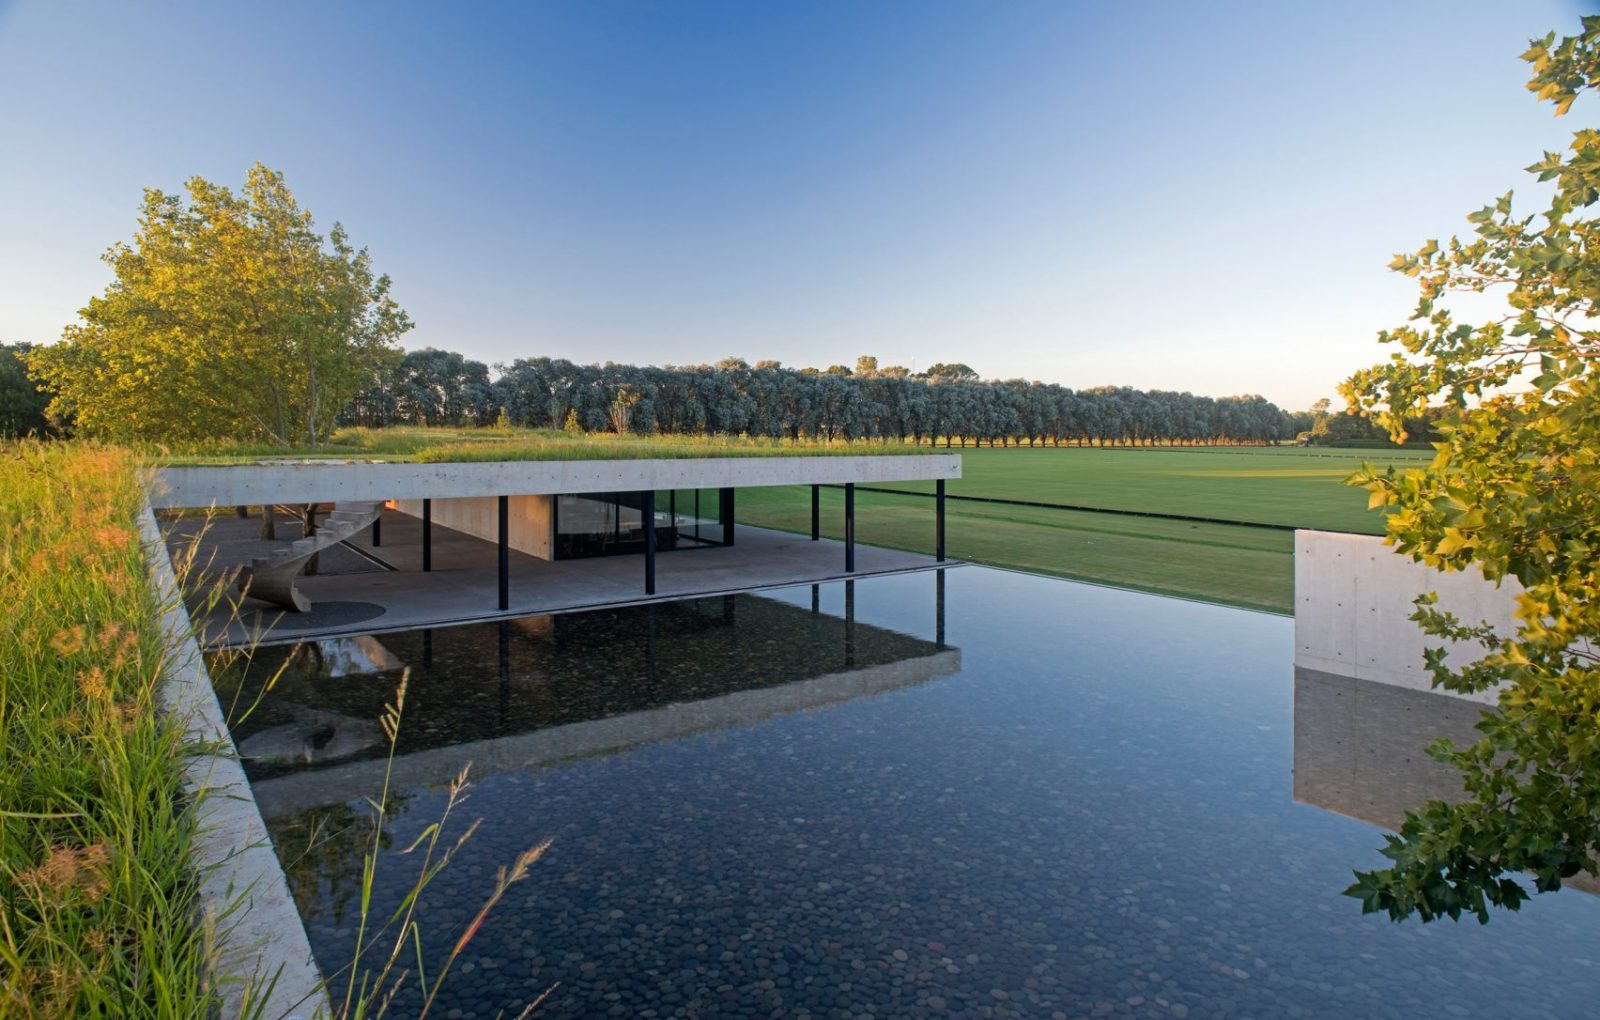 Luxury Villa, Grazing Horses, Nacho Figueras, top house, architect, building, billionaire, horse, garden, roof, Ramos studio, youtube, video, Polo Stables, Argentina, Buenos Aires, living room, storage room, saddles, boots, helmets, spiral staircase, pool, panorama, Juan Ignacio Ramos, peace, calm, relax, wine,